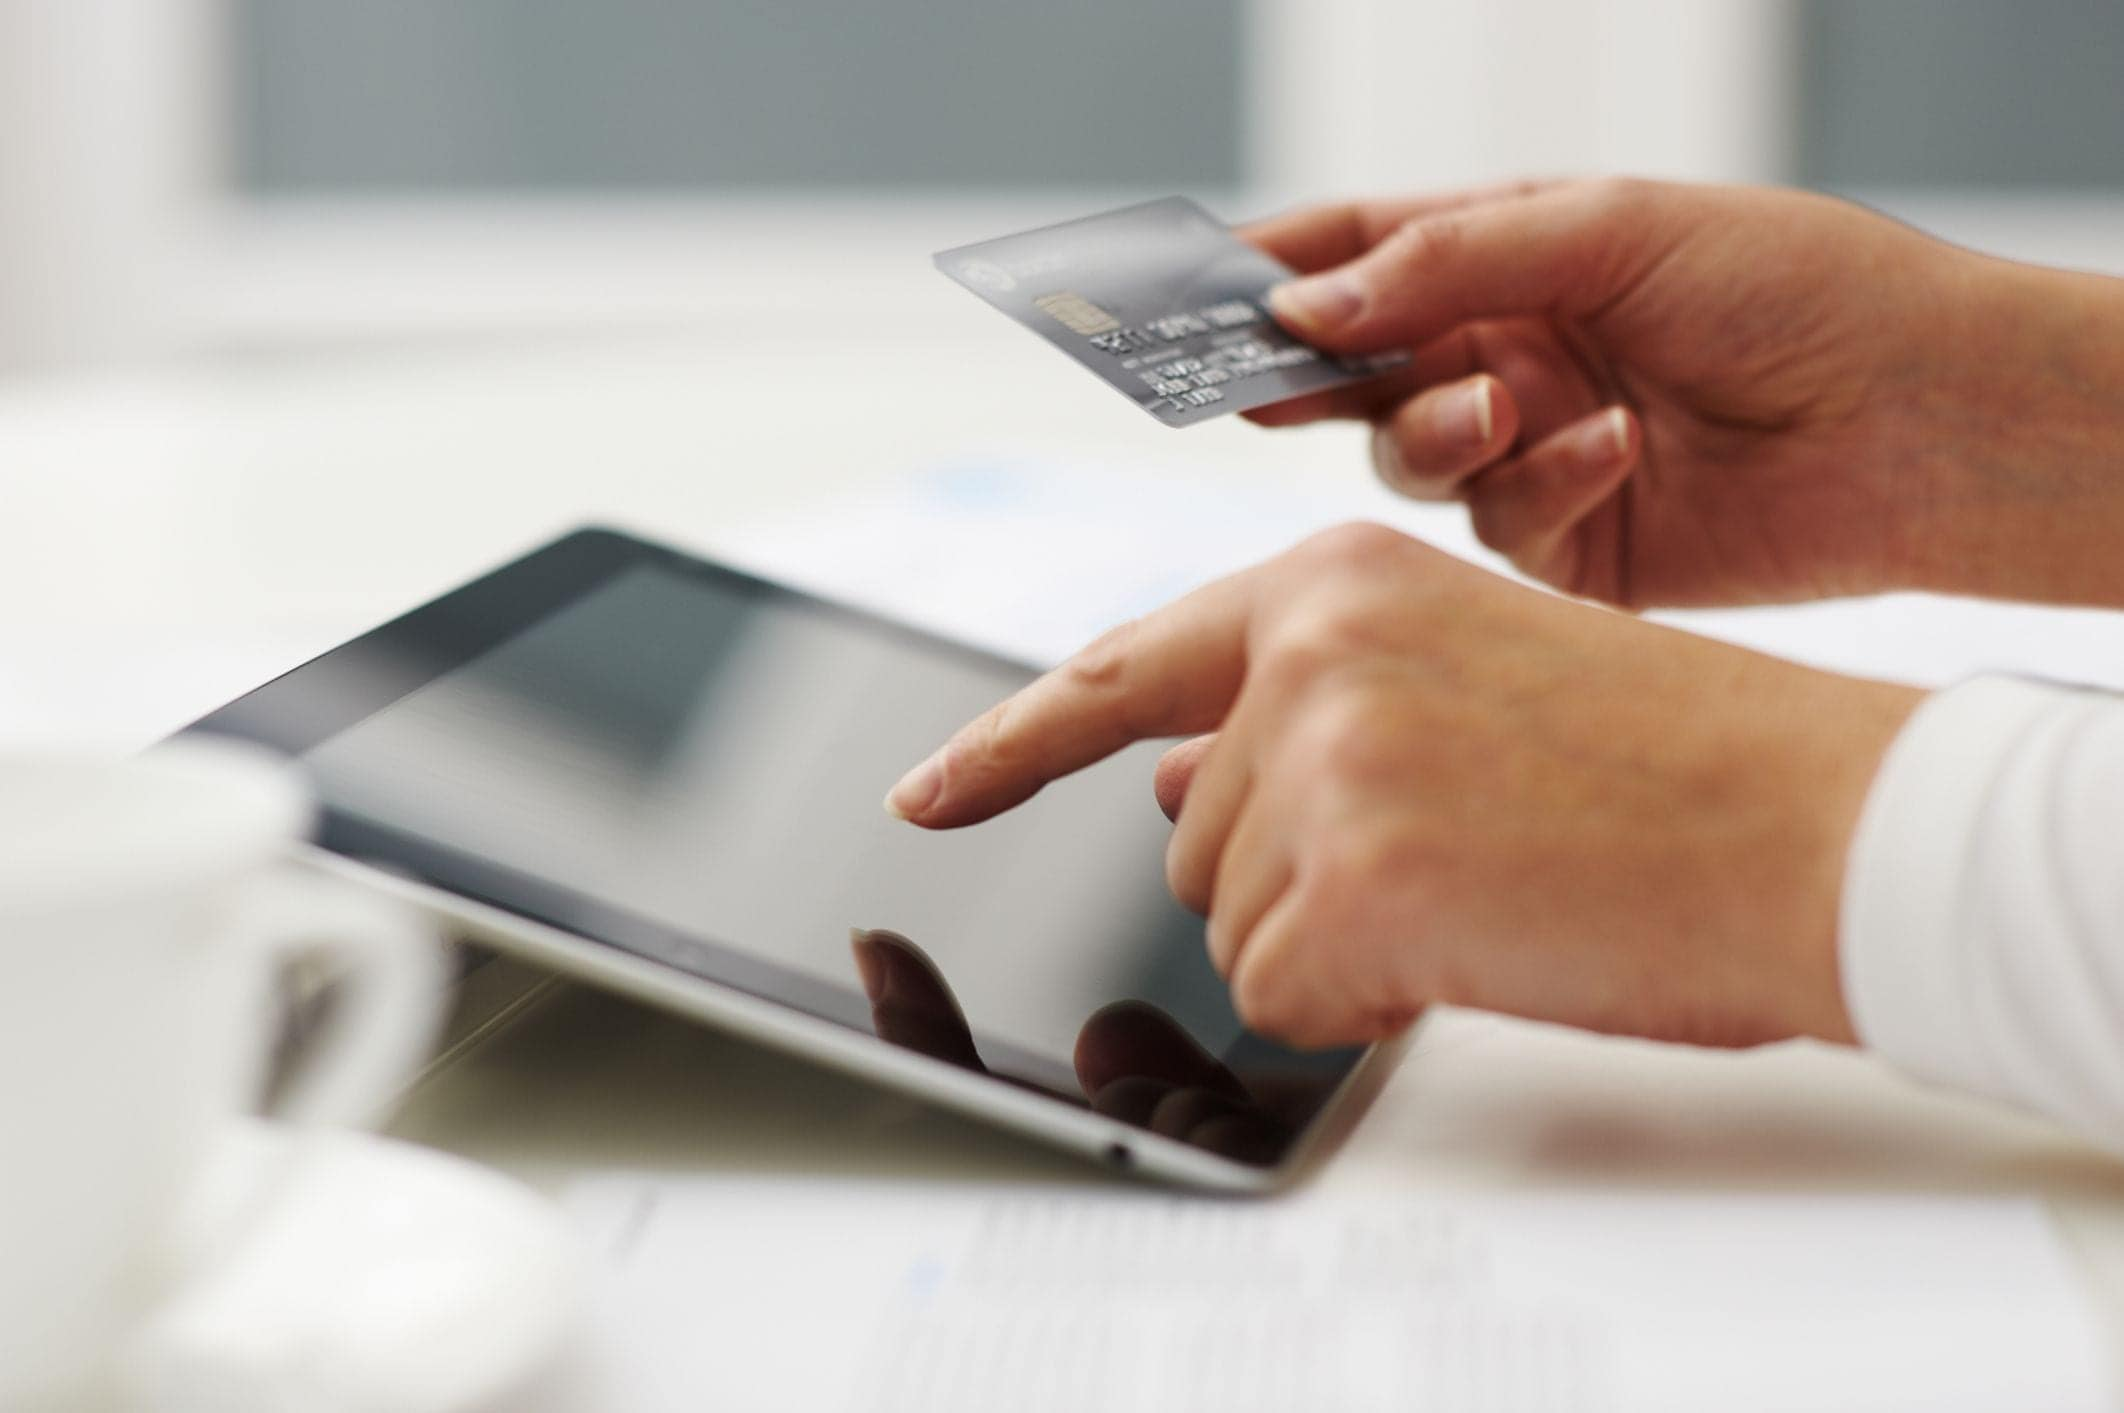 10 Good Reasons To Use A Credit Card Instead Of Cash